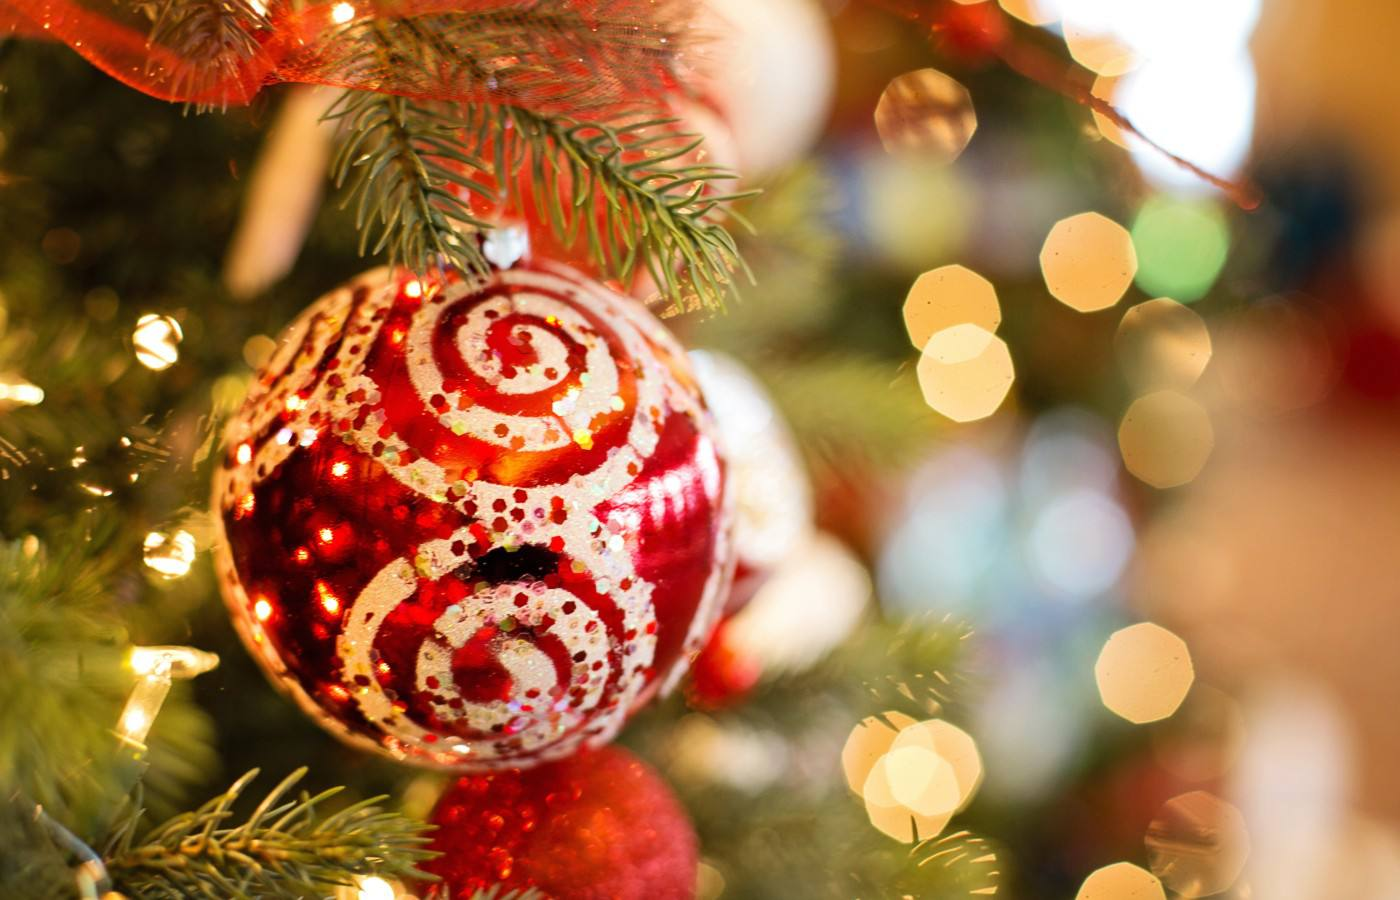 How to Select and Care for a Real Tree This Christmas